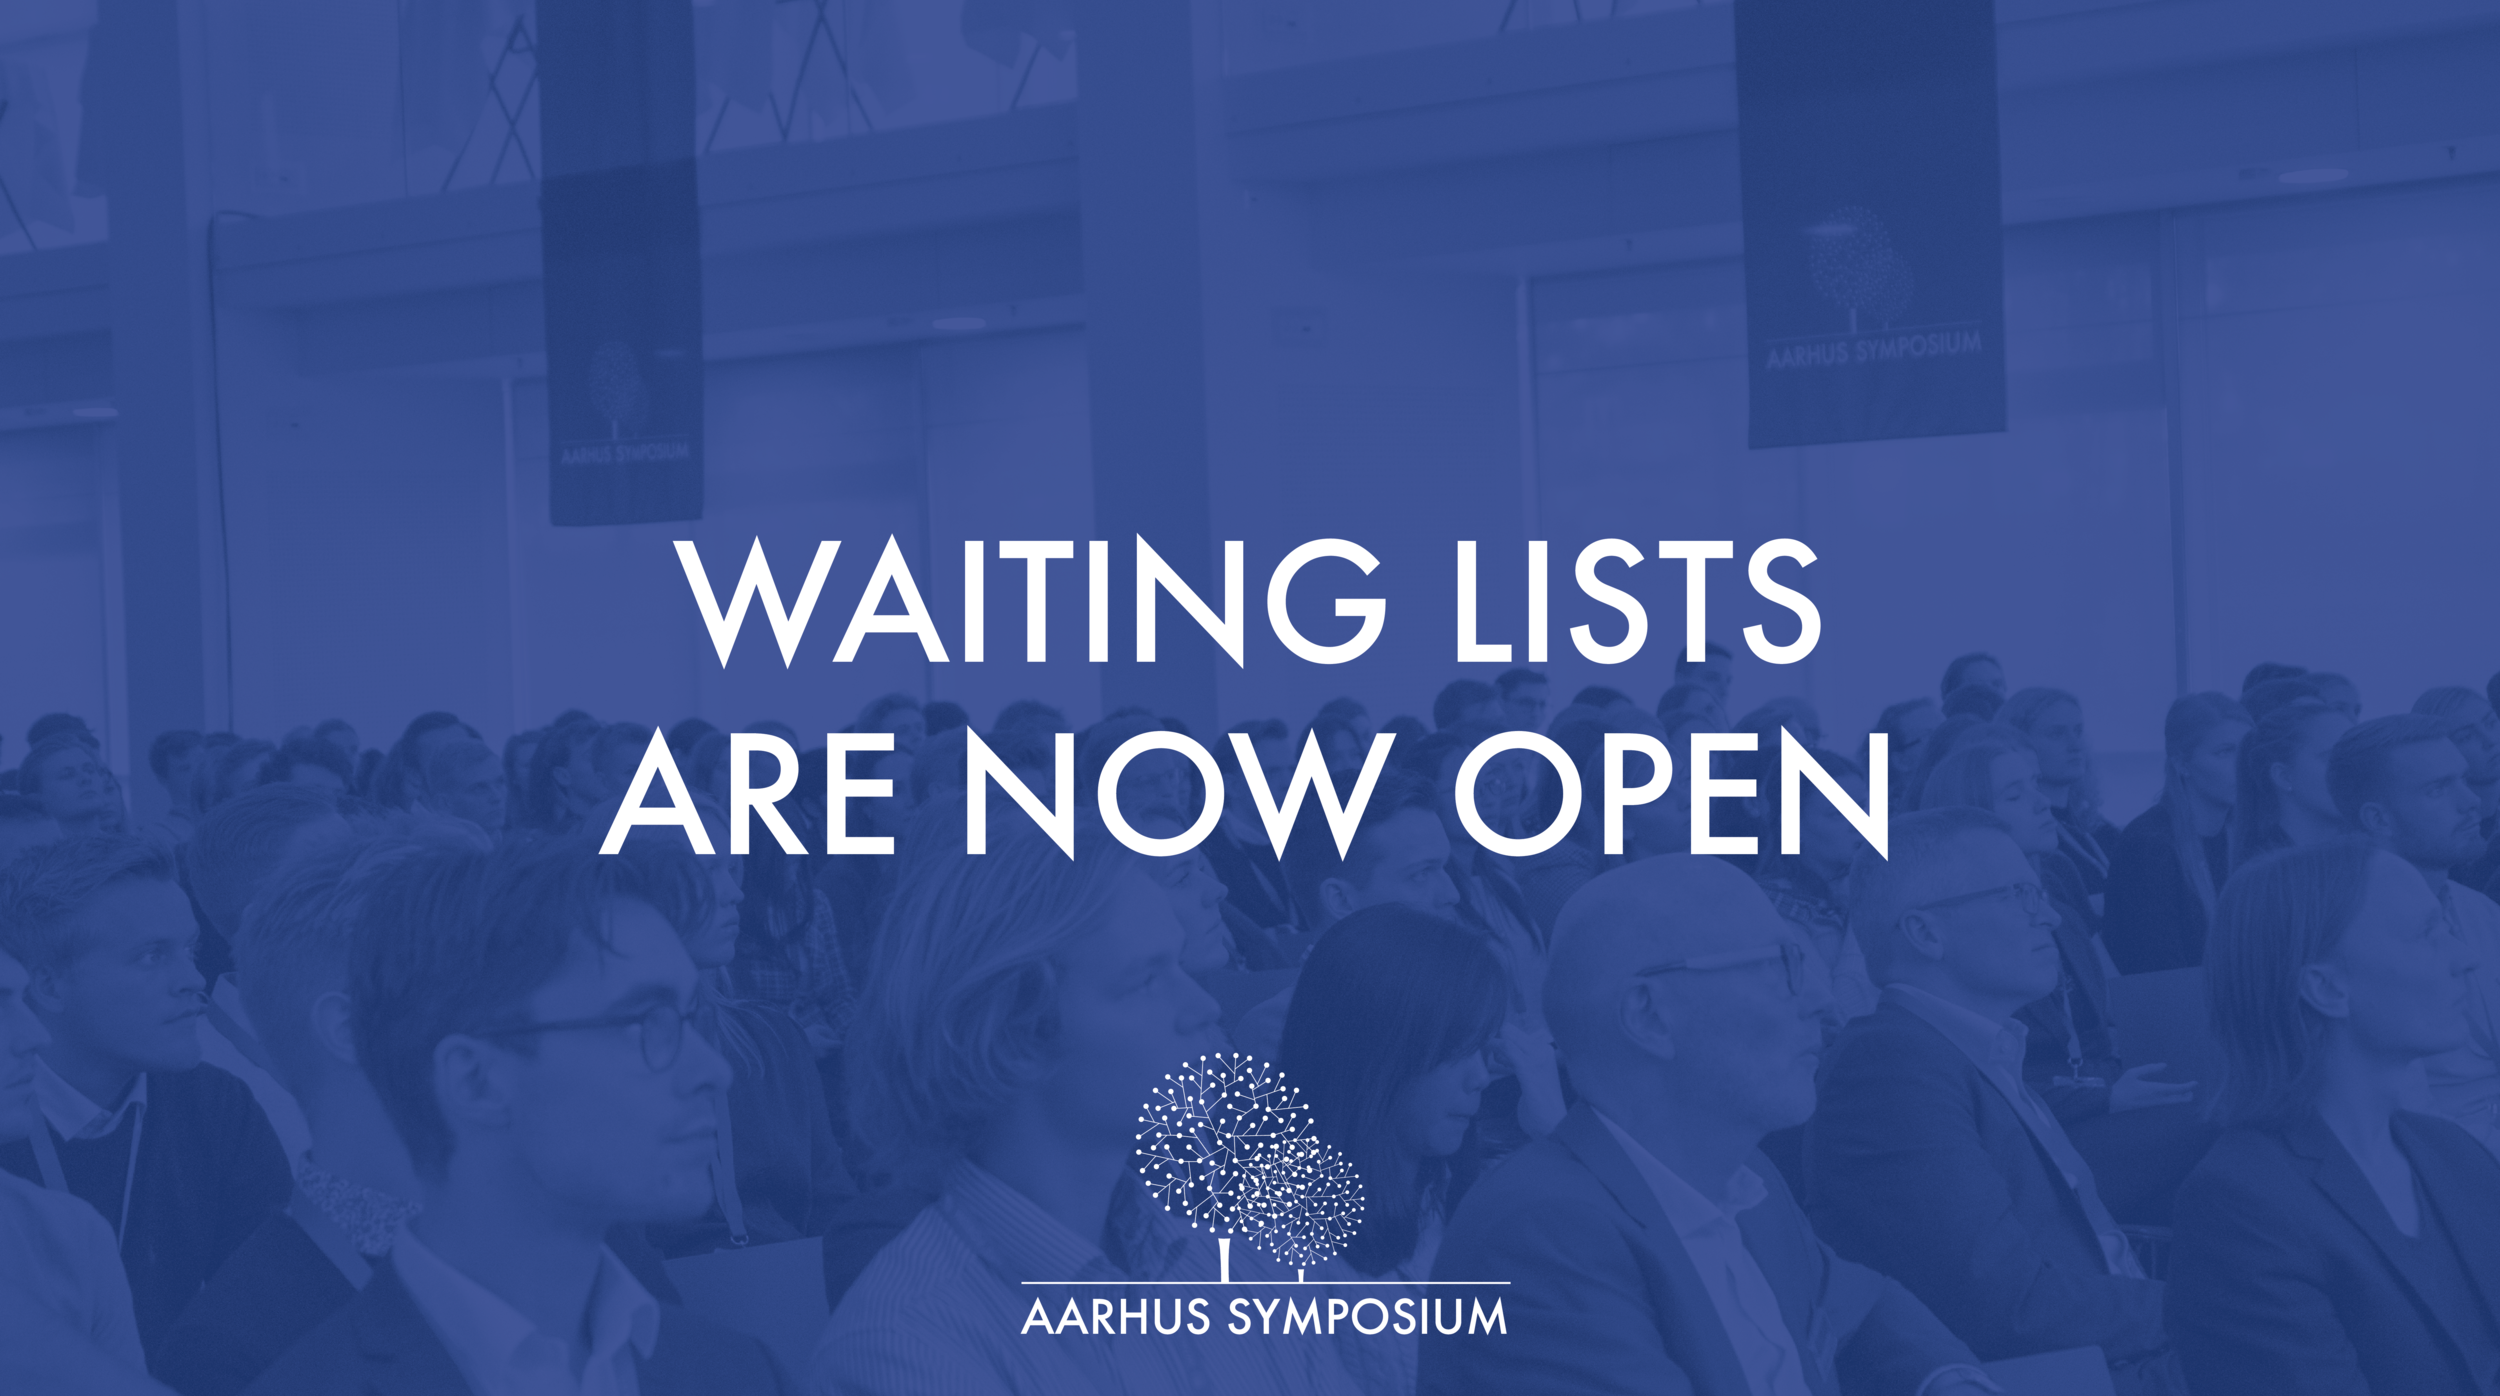 waiting lists now open_web.png